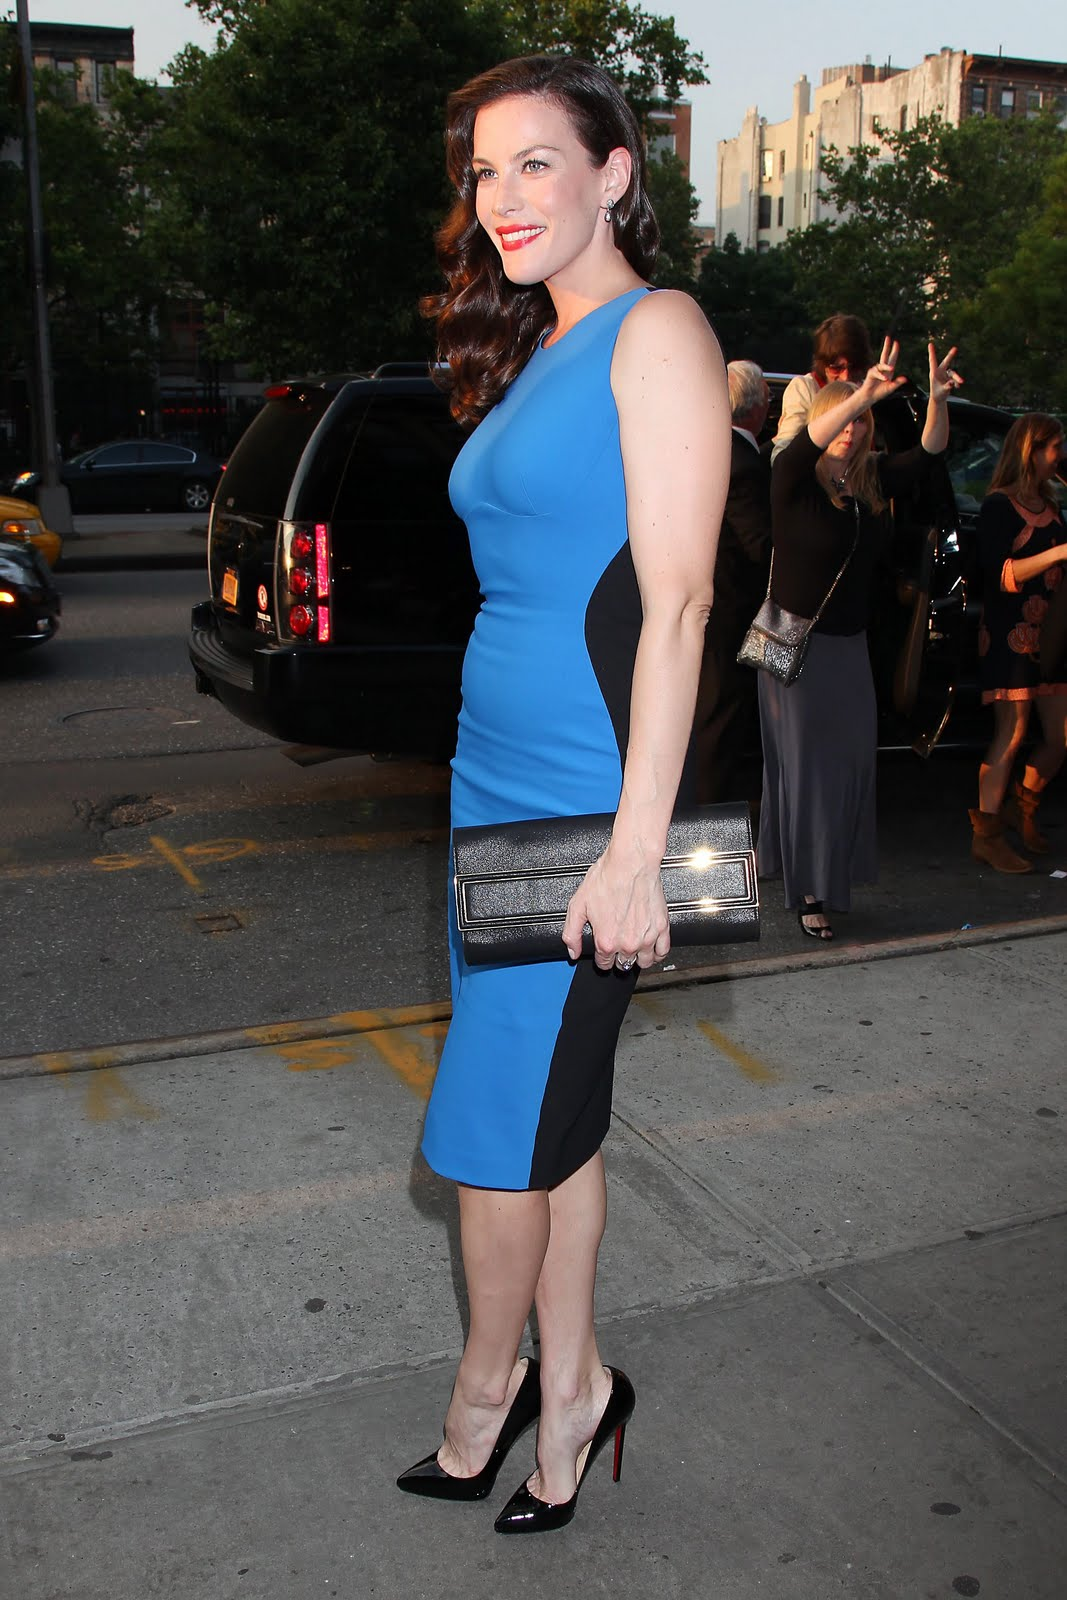 http://1.bp.blogspot.com/-qTRBzhicmRs/TkLYf0eVhYI/AAAAAAAAJhs/Ka8cOQa4vHA/s1600/Liv_Tyler_attends_a_screening_of_The_Ledge_in_New_York_City_June_21_2011_009_123_10lo.jpg